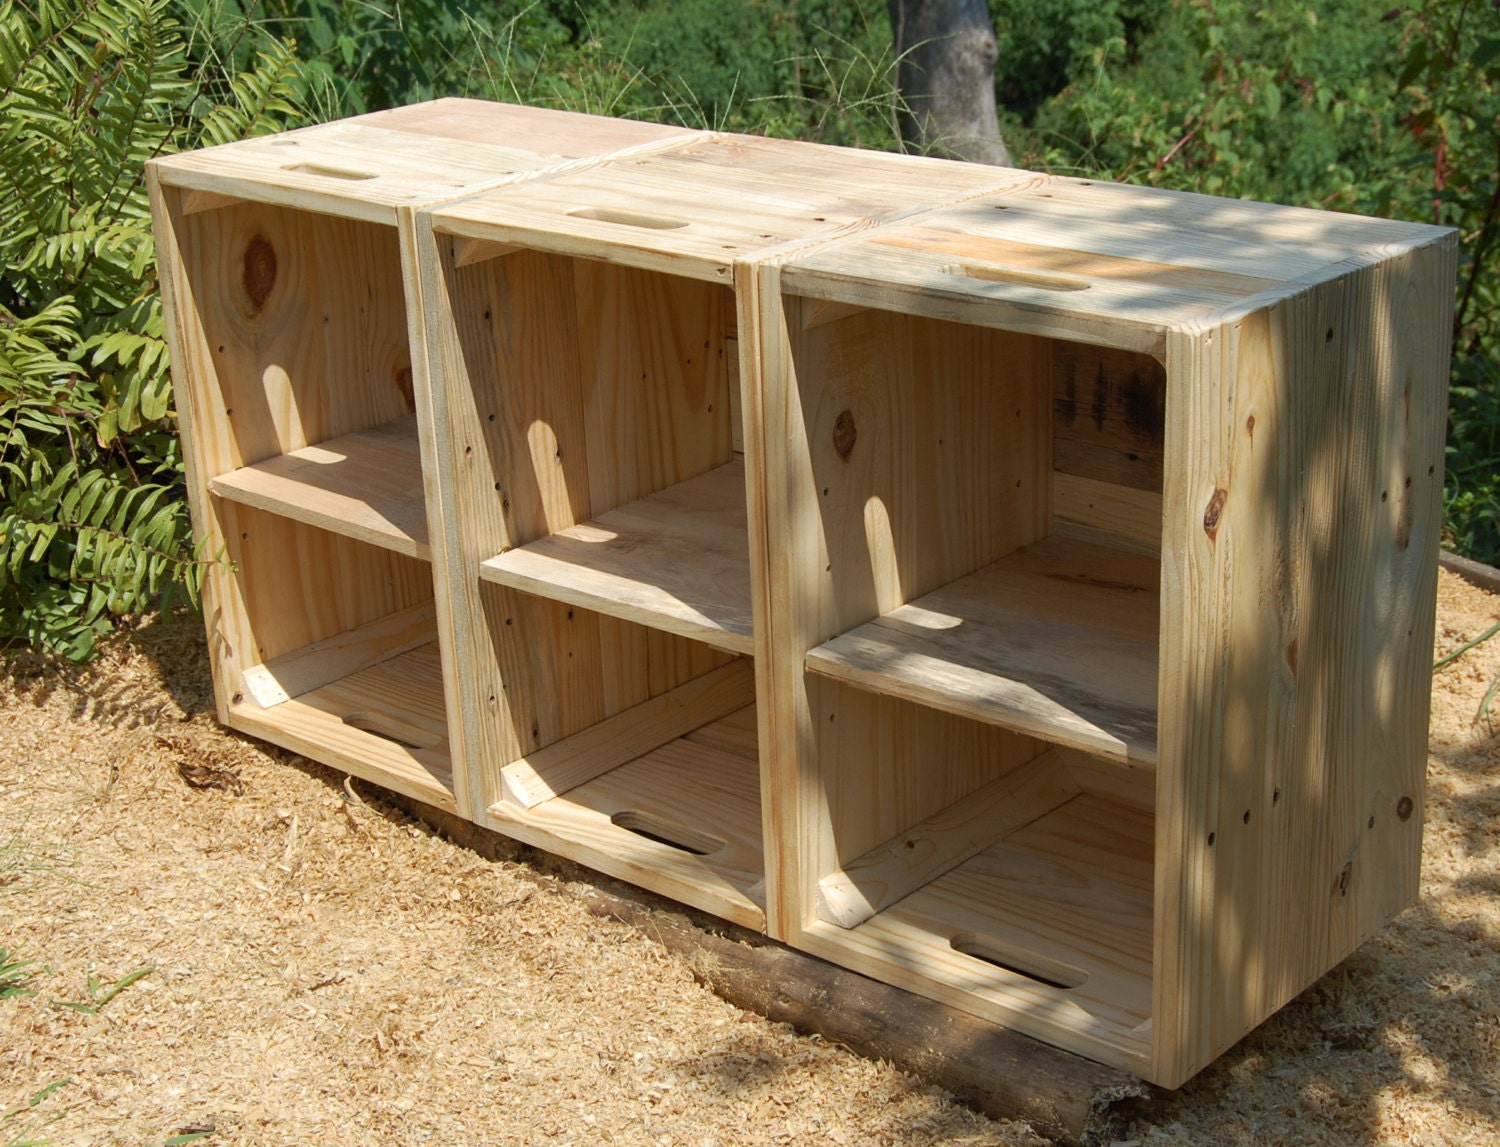 wooden crates as shelves wooden crates with adjustable shelves bookcase storage 4640